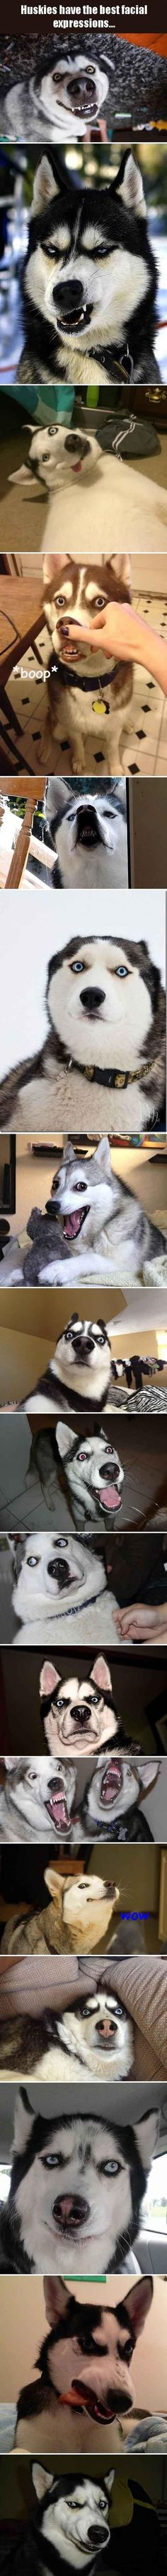 cool [post_title by http://dezdemon-humoraddiction.pw/dog-humor/huskies-have-the-best-facial-expressions-17-pics/